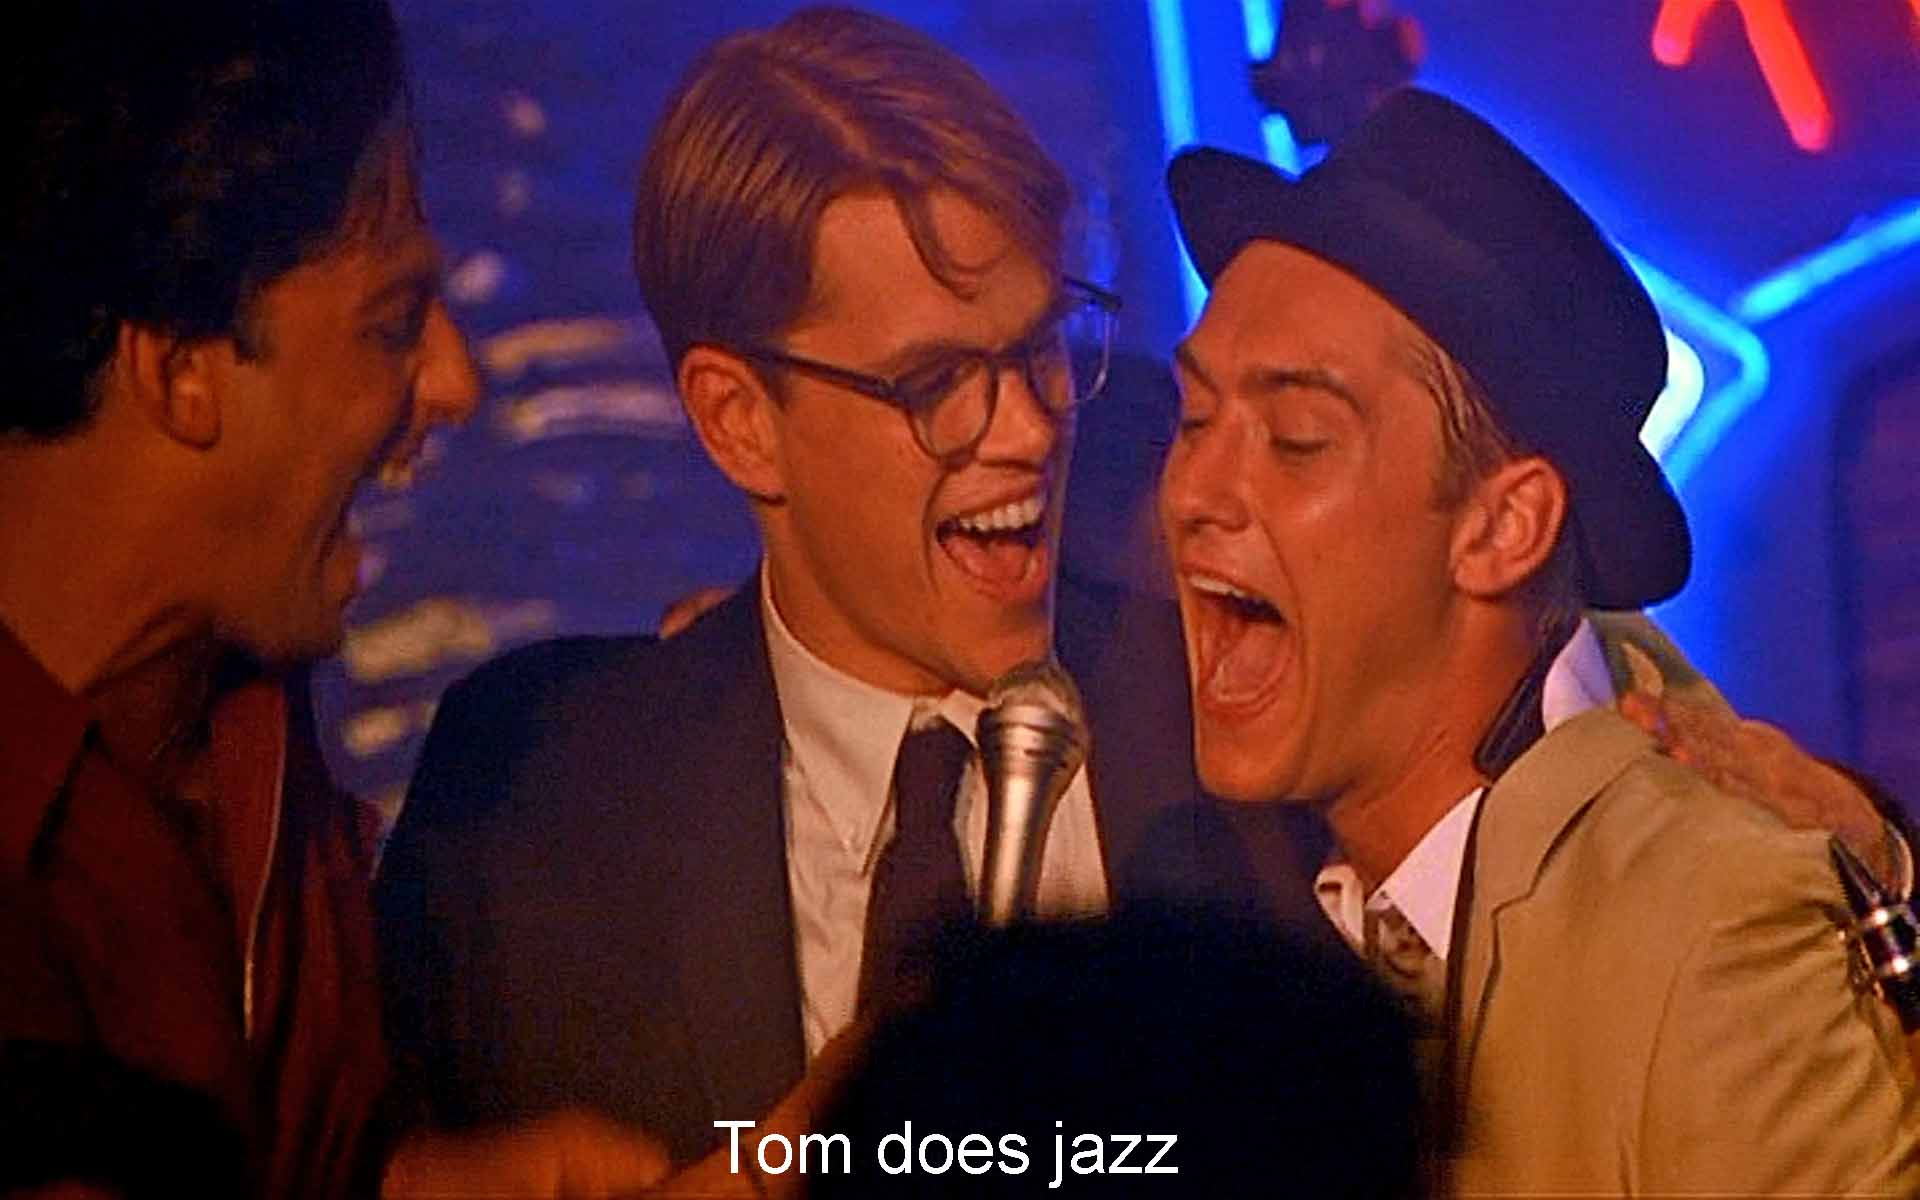 Tom does jazz